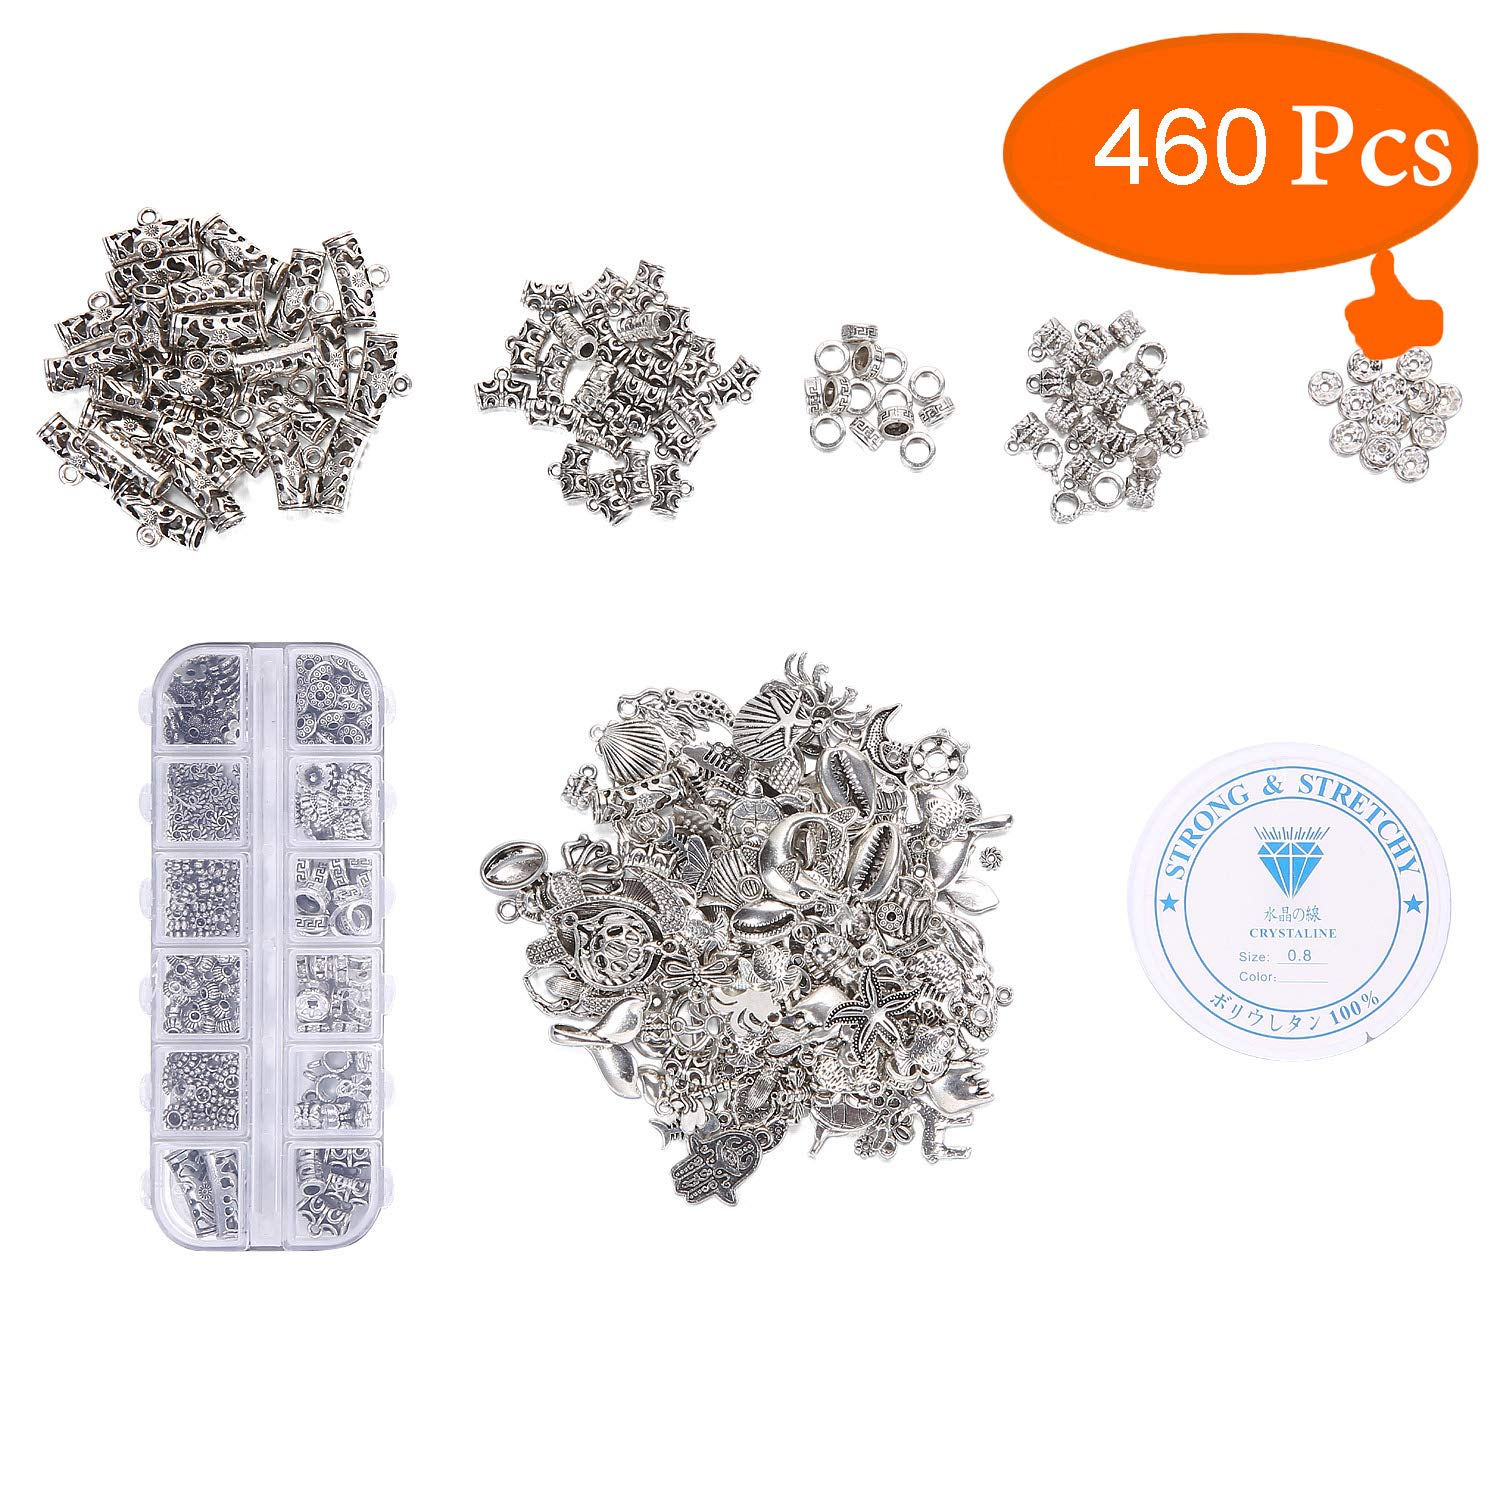 460 Spacer Beads and Metal Charms YUGDRUZY Bulk Metal Charms Mixed Pendant Charms Spacers for Jewelry Making Charms for Bracelets Necklaces Earrings Silver Charms Bulk for Jewelry Maker Women Girls